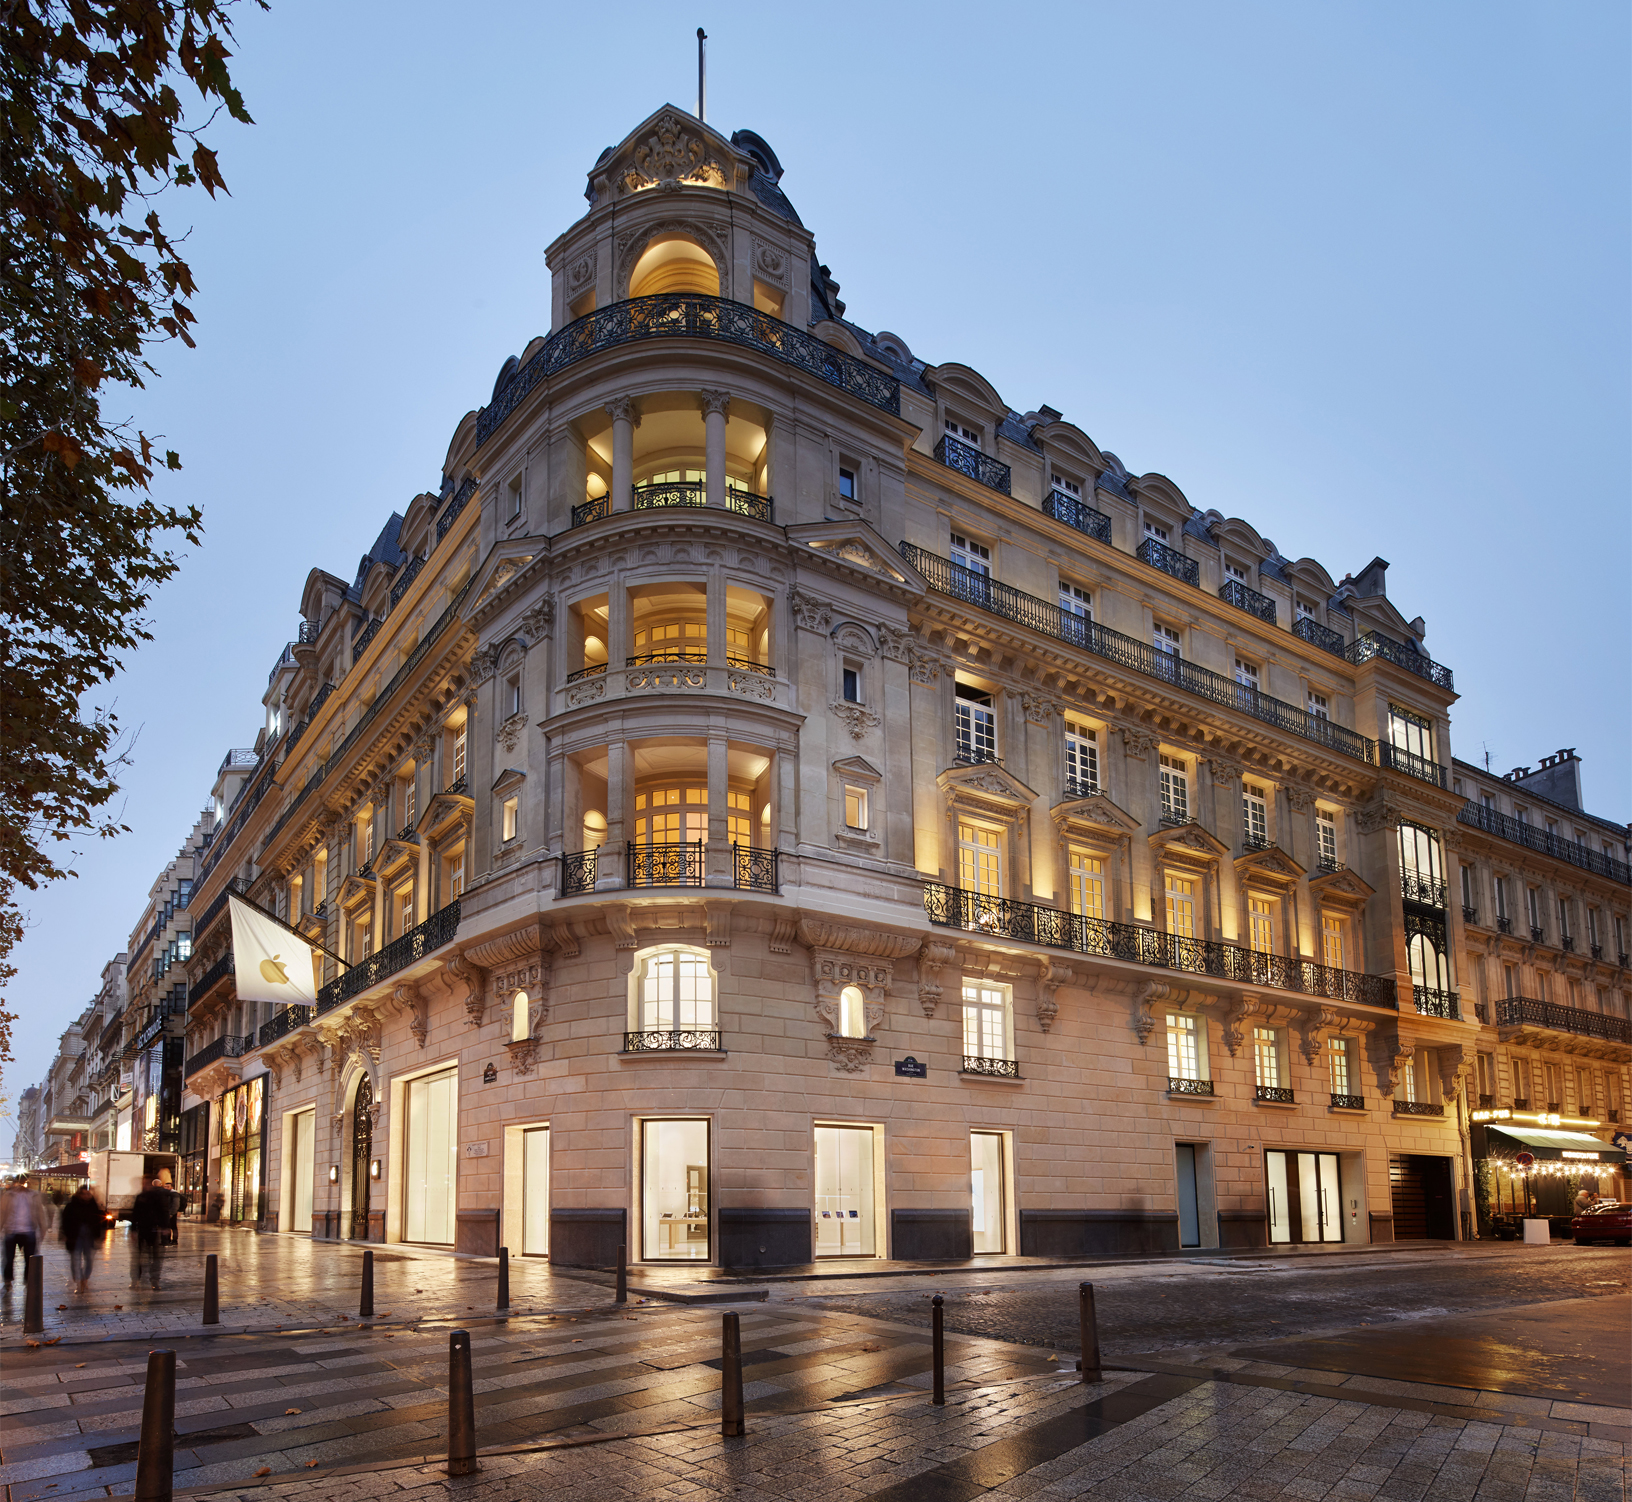 The opening of the new Apple store in France will be held on November 18